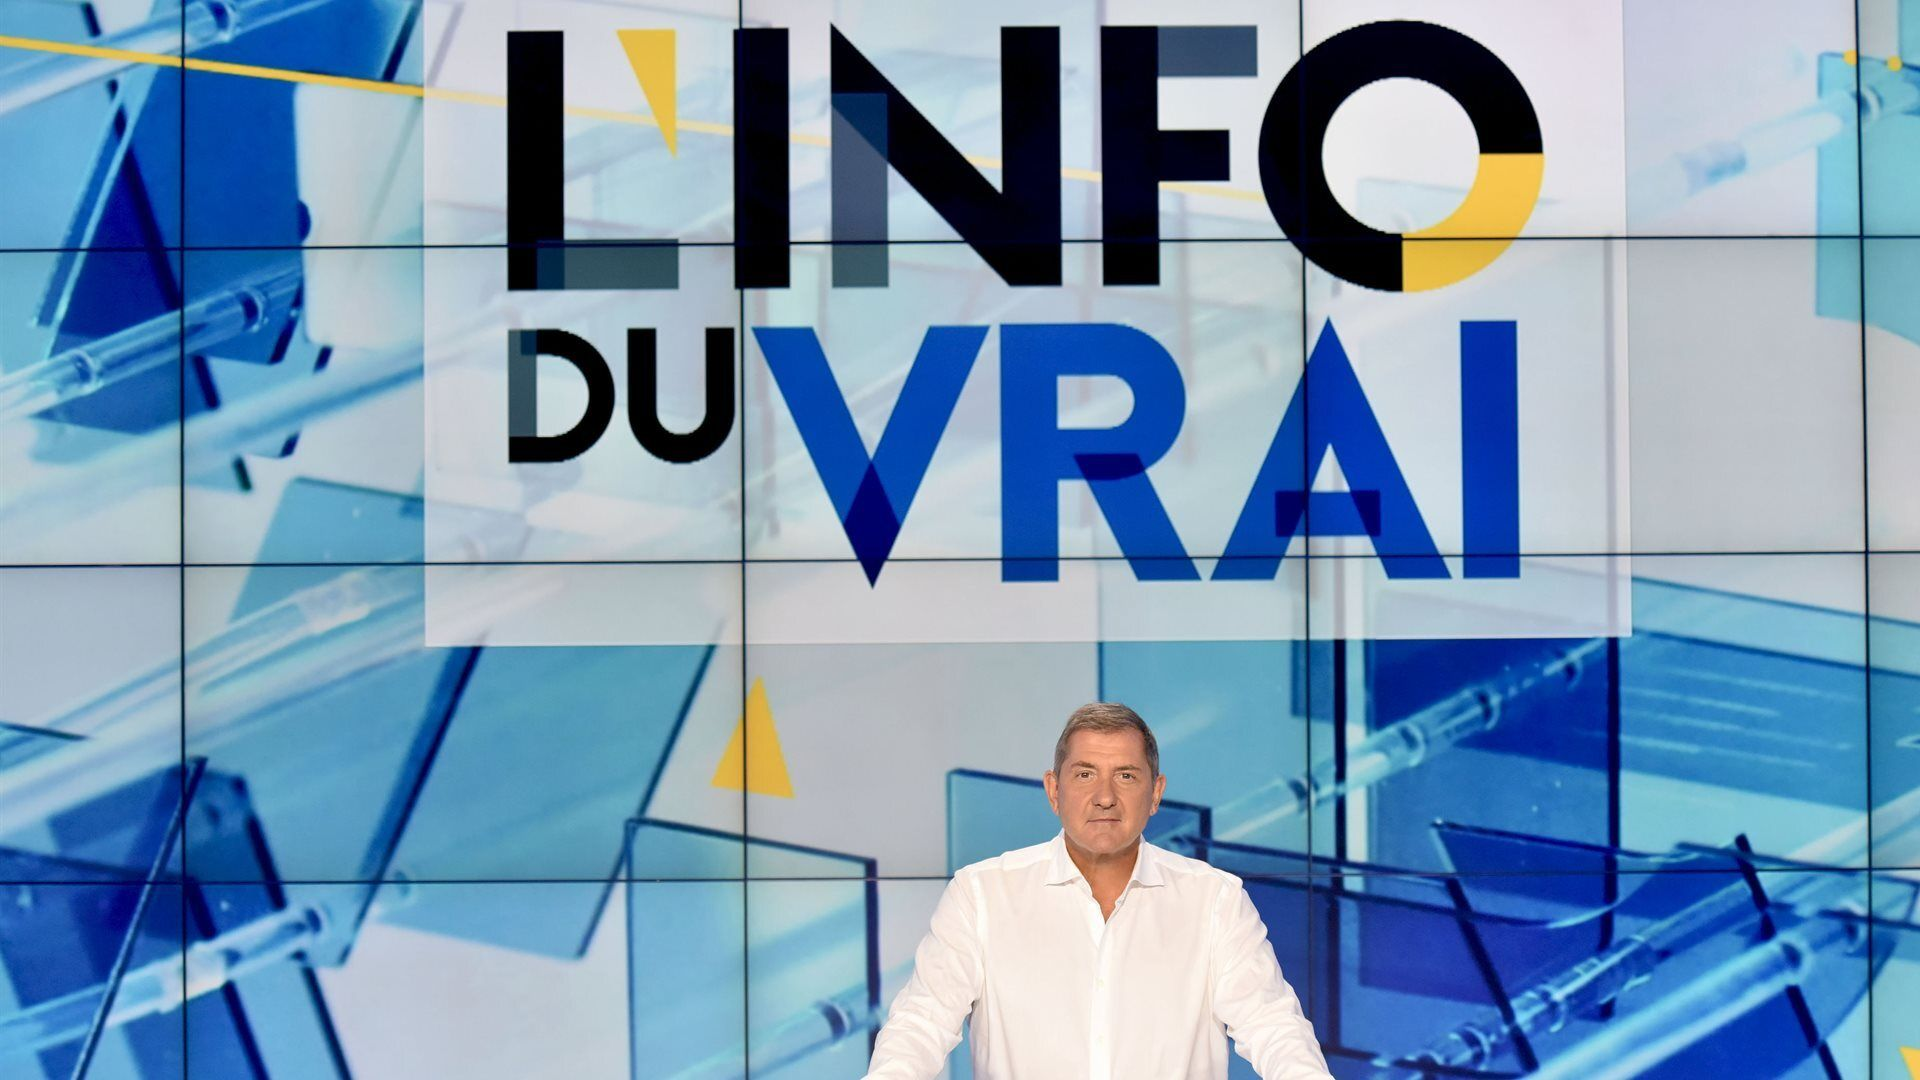 Rediffusion L'info du vrai en streaming